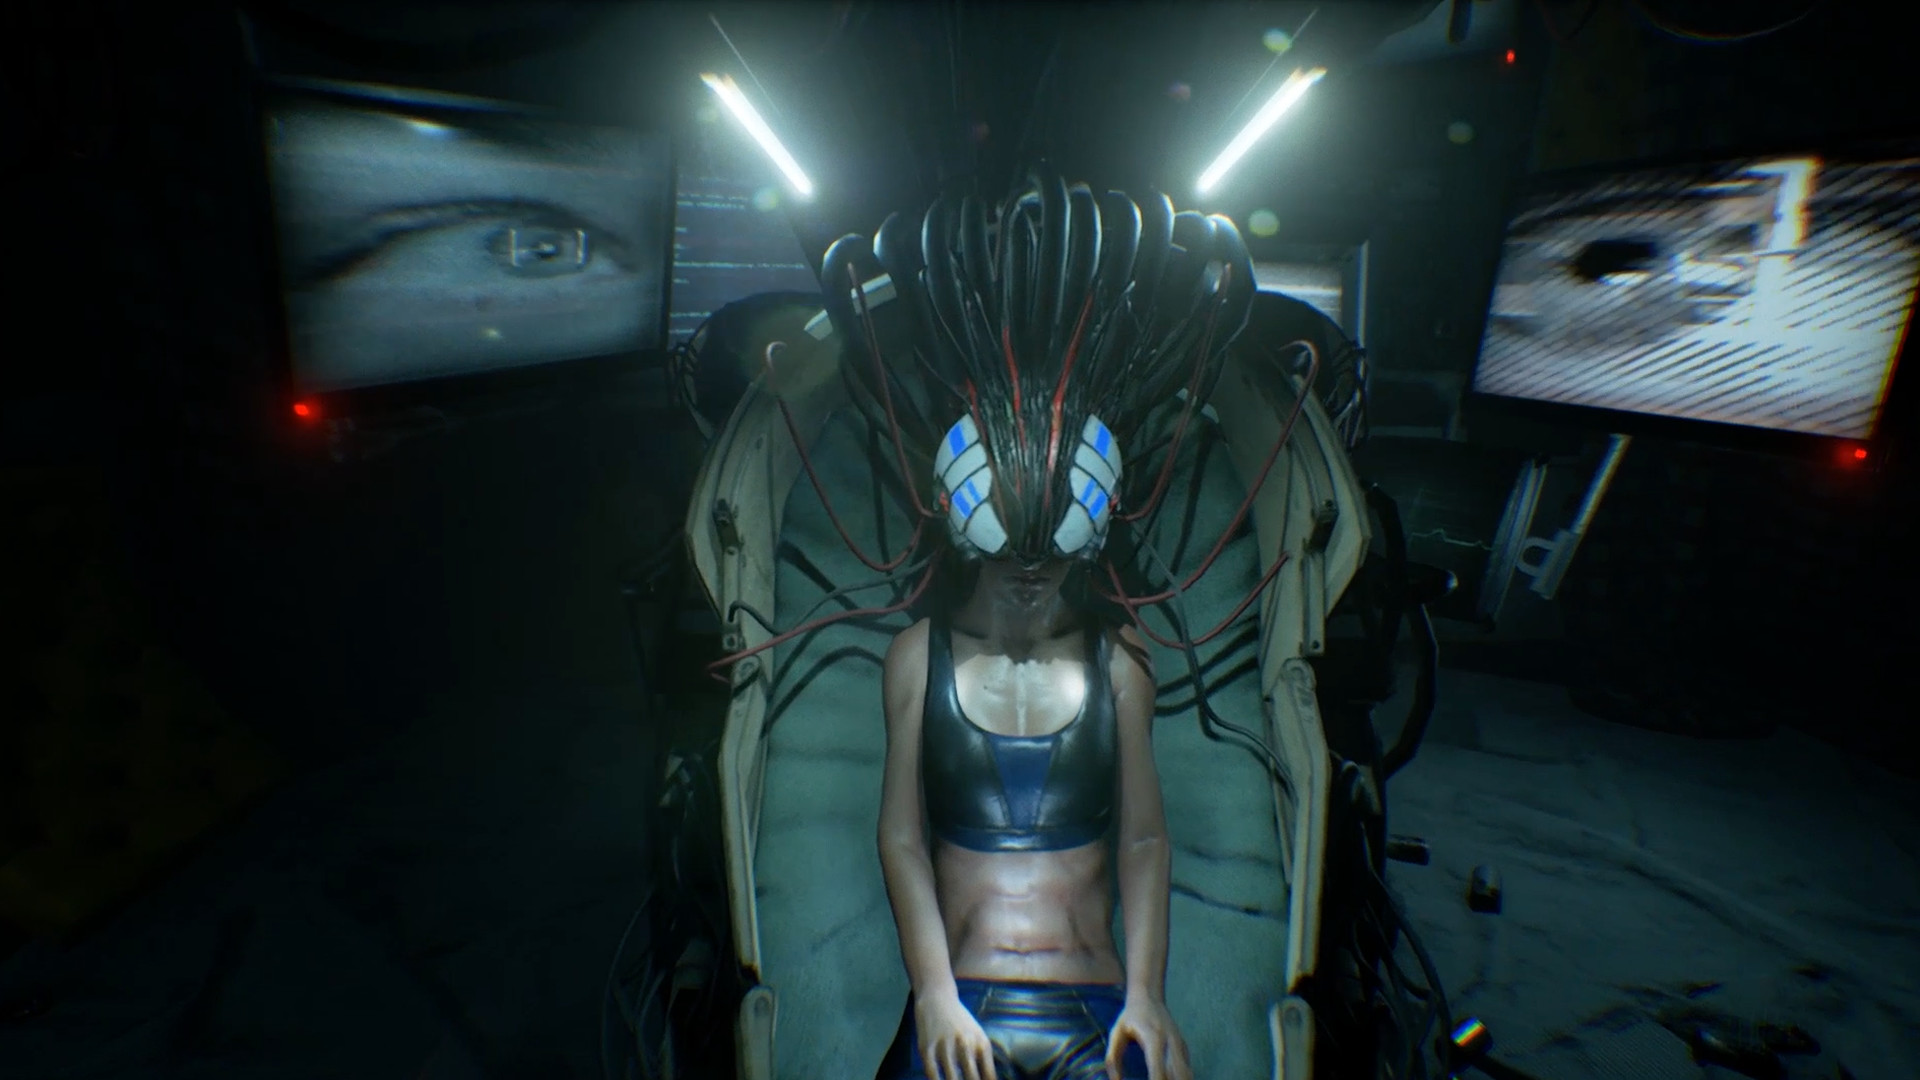 Observer jacks in for another cyberpunk nightmare on PS5 and Xbox Series X screenshot